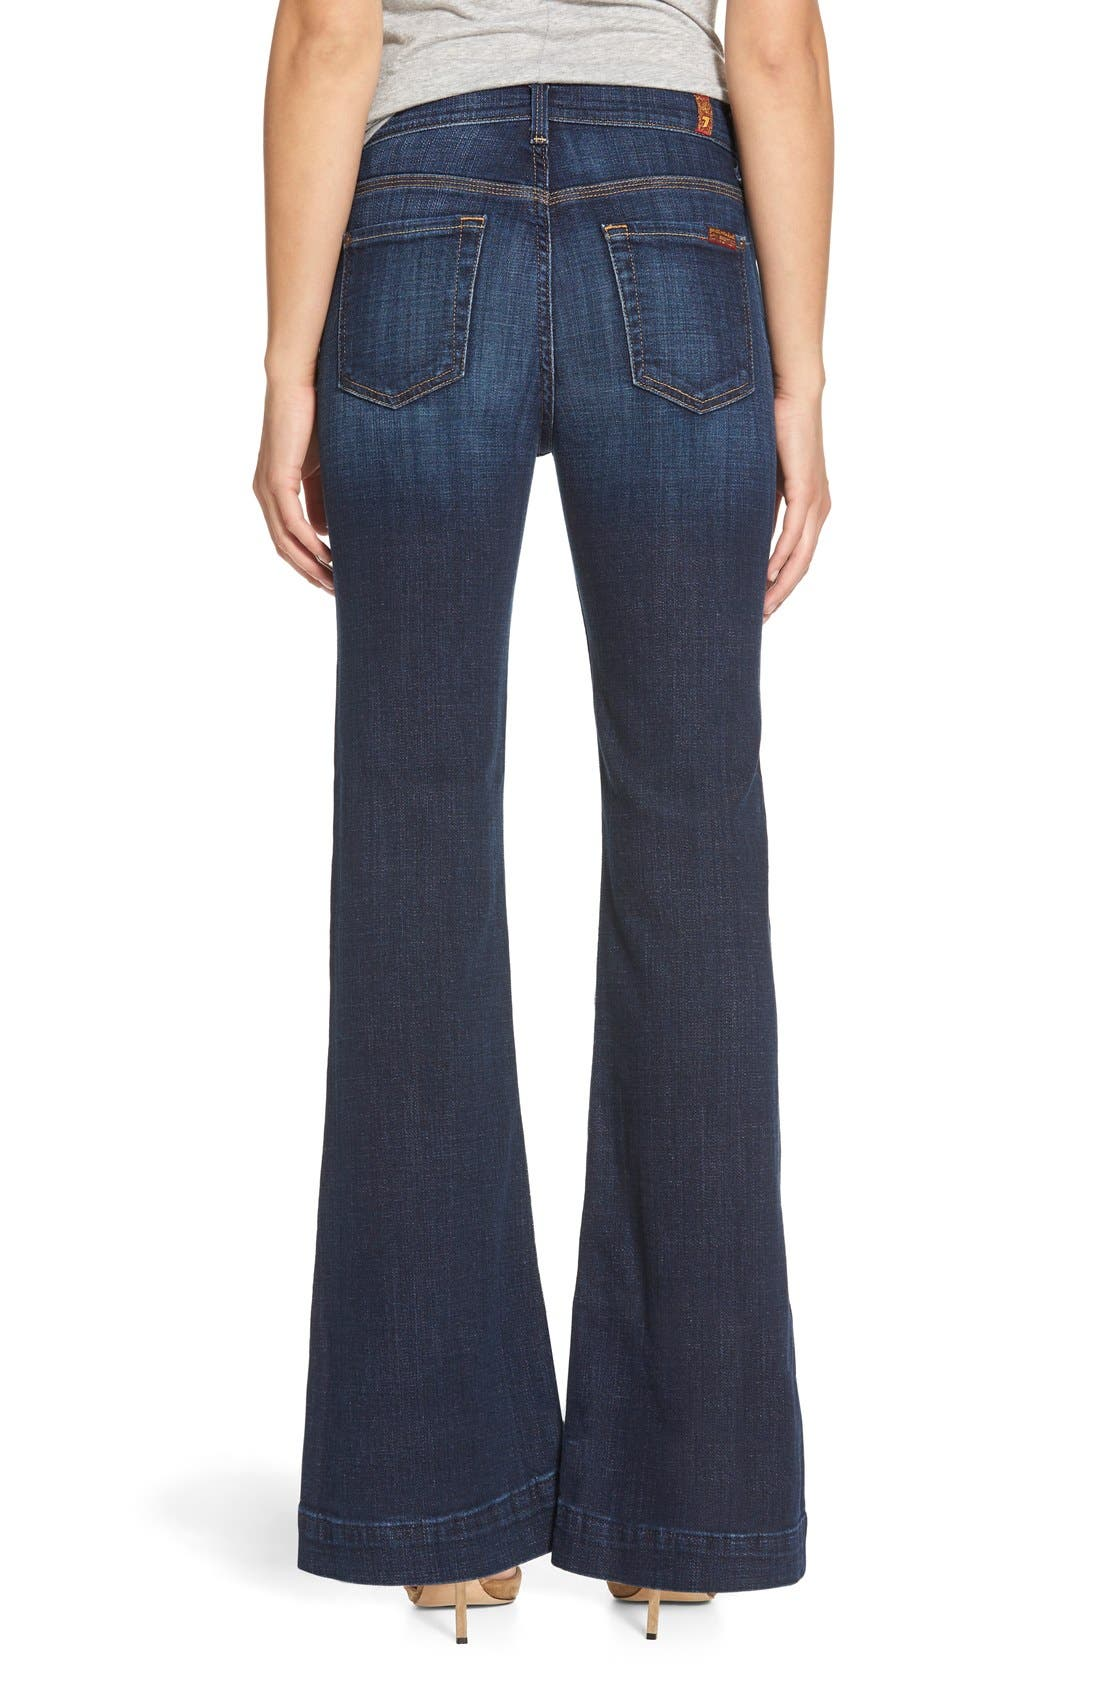 Alternate Image 2  - 7 For All Mankind® 'Tailorless Ginger' High Rise Flare Jeans (Royal Broken Twill) (Short)